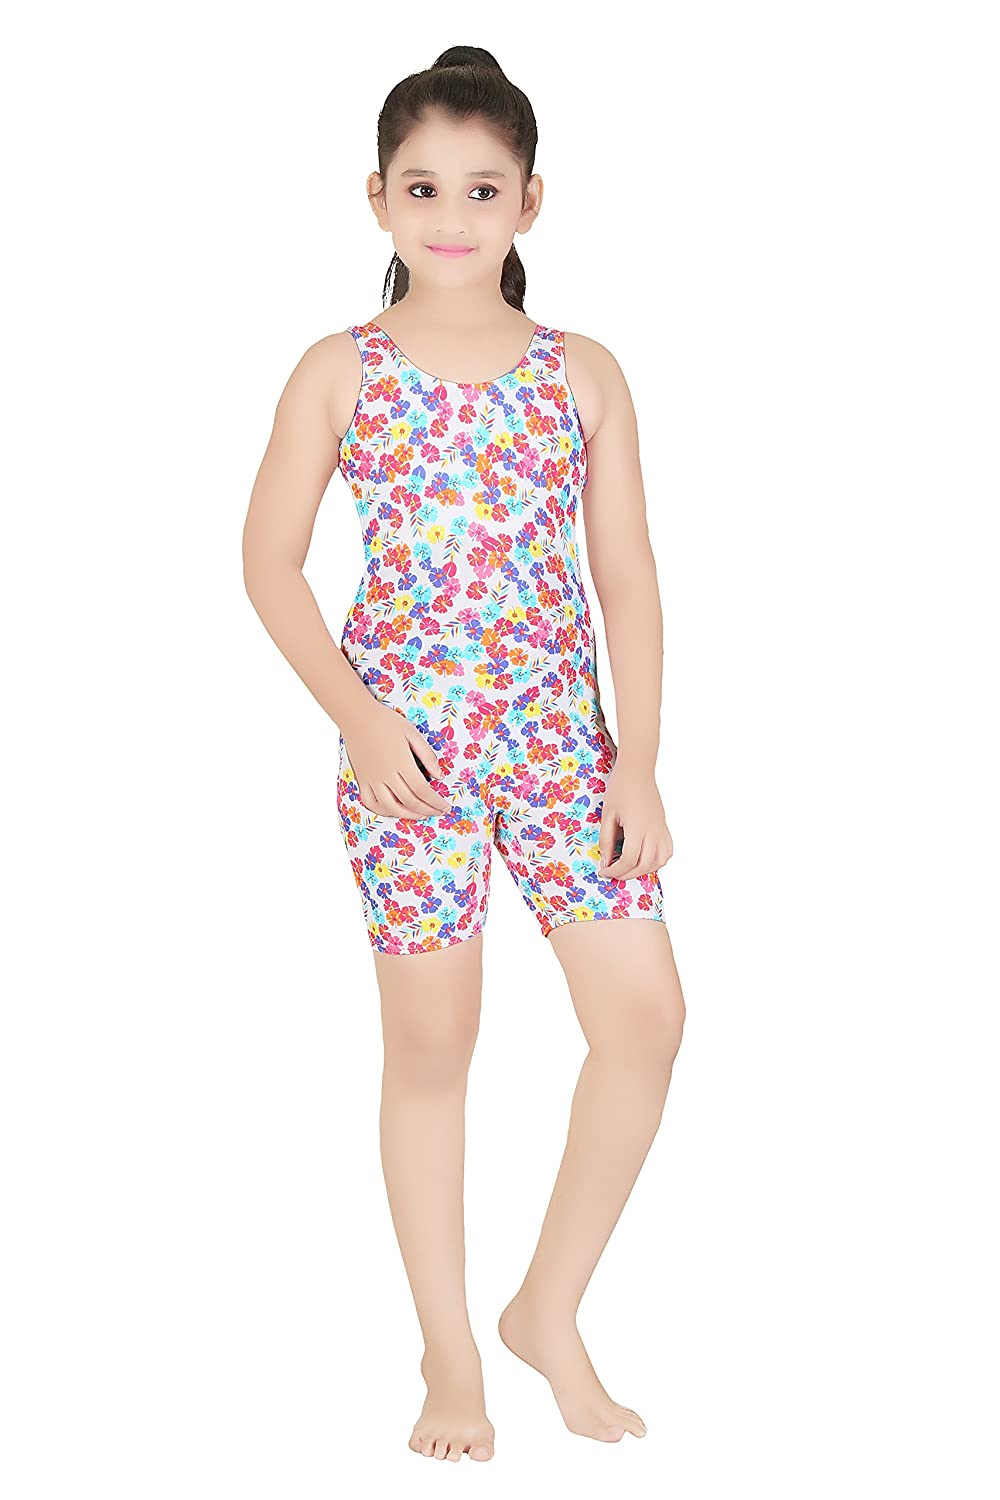 a488d03343 Fashion Fever One Piece Swim Suits for Girls: Amazon.in: Clothing &  Accessories